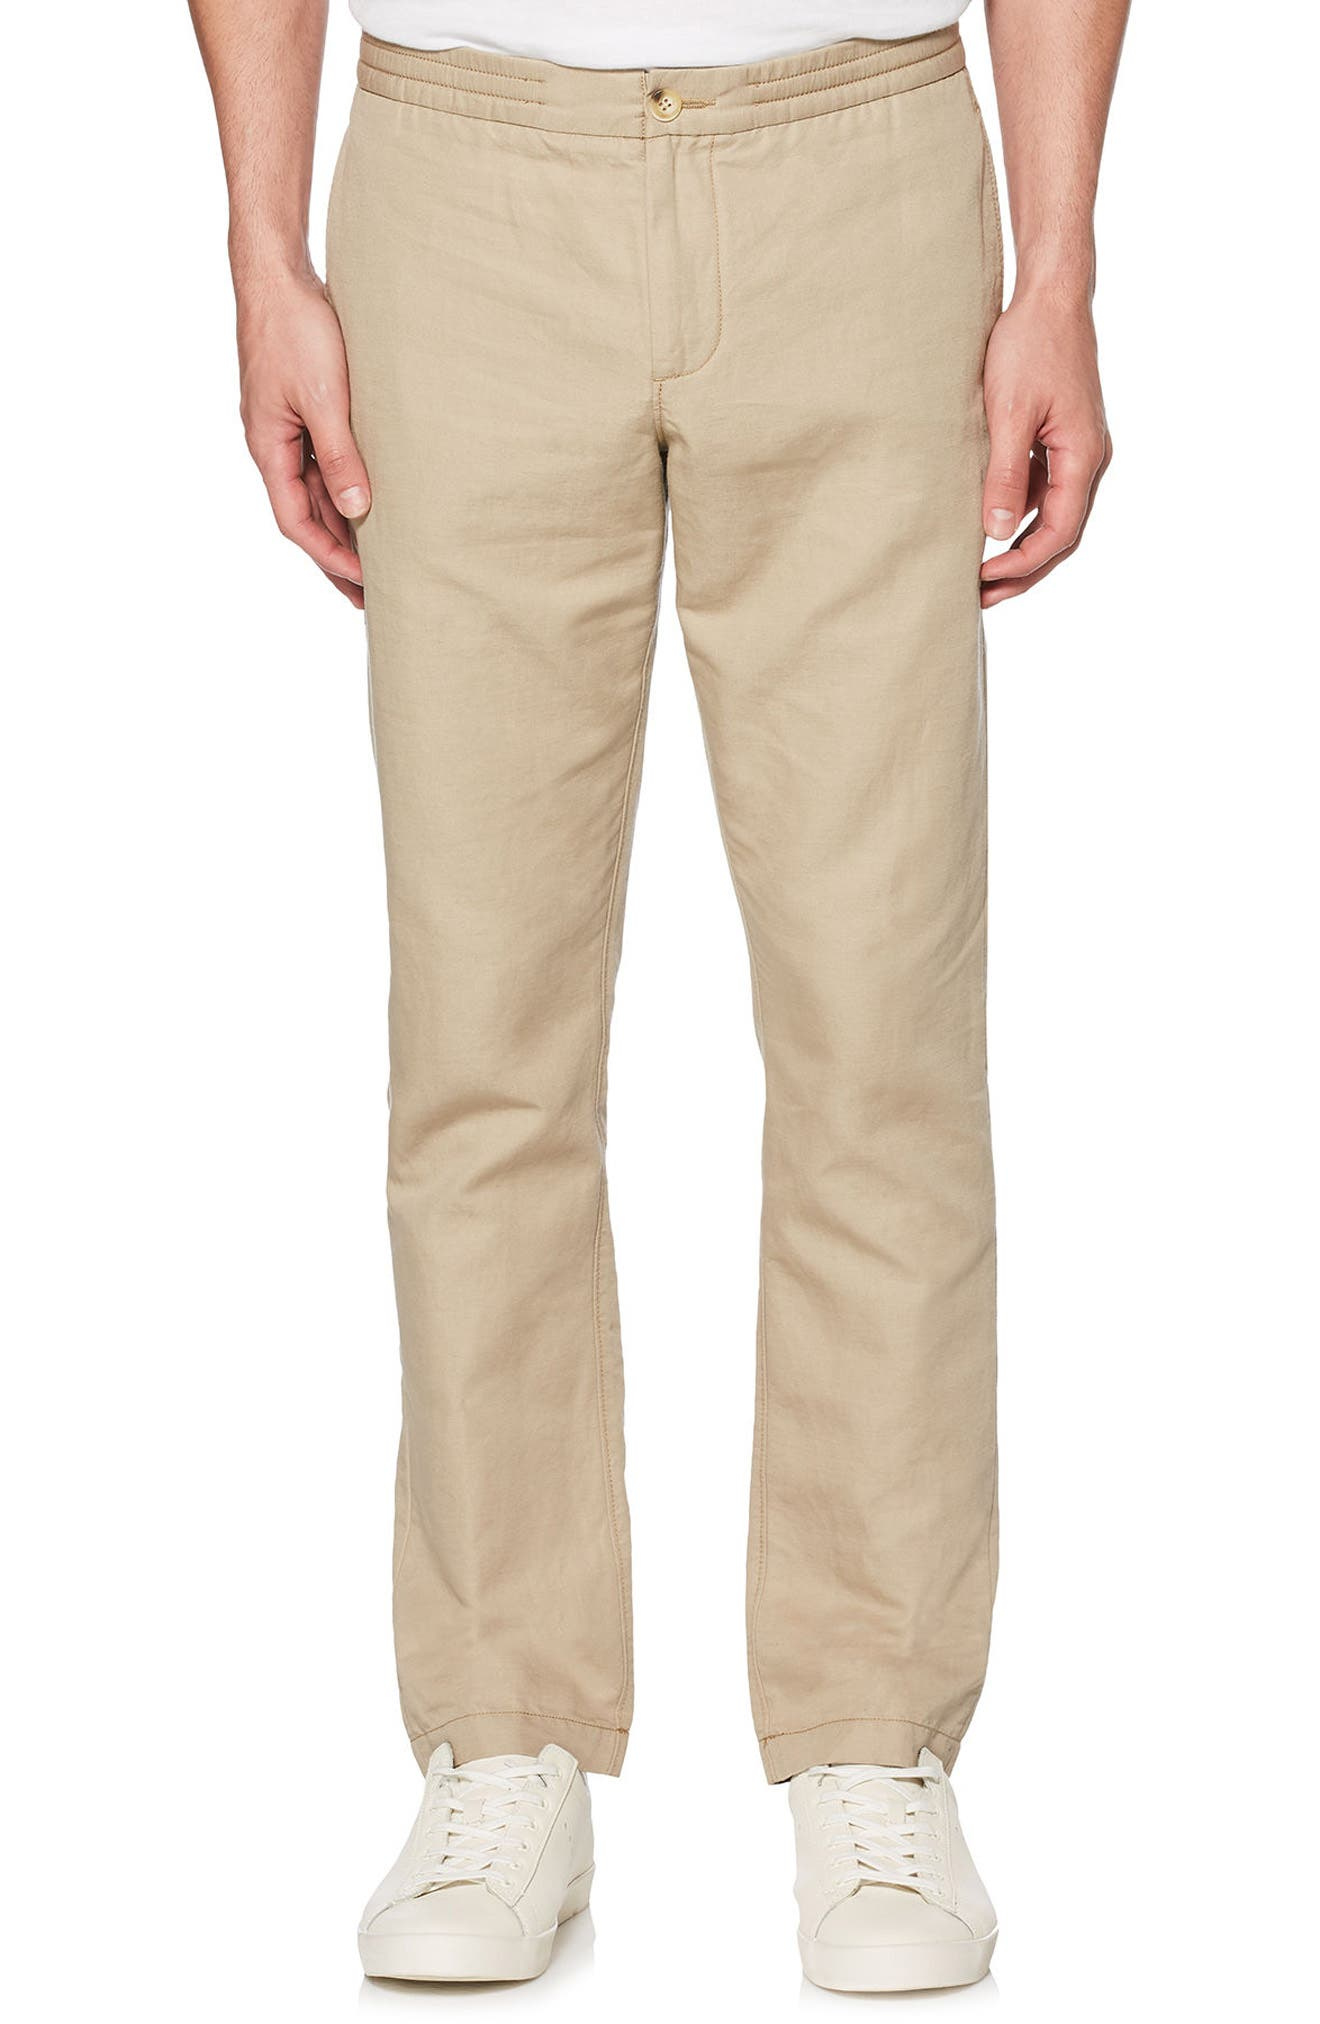 Linen Blend Pants,                             Main thumbnail 1, color,                             271